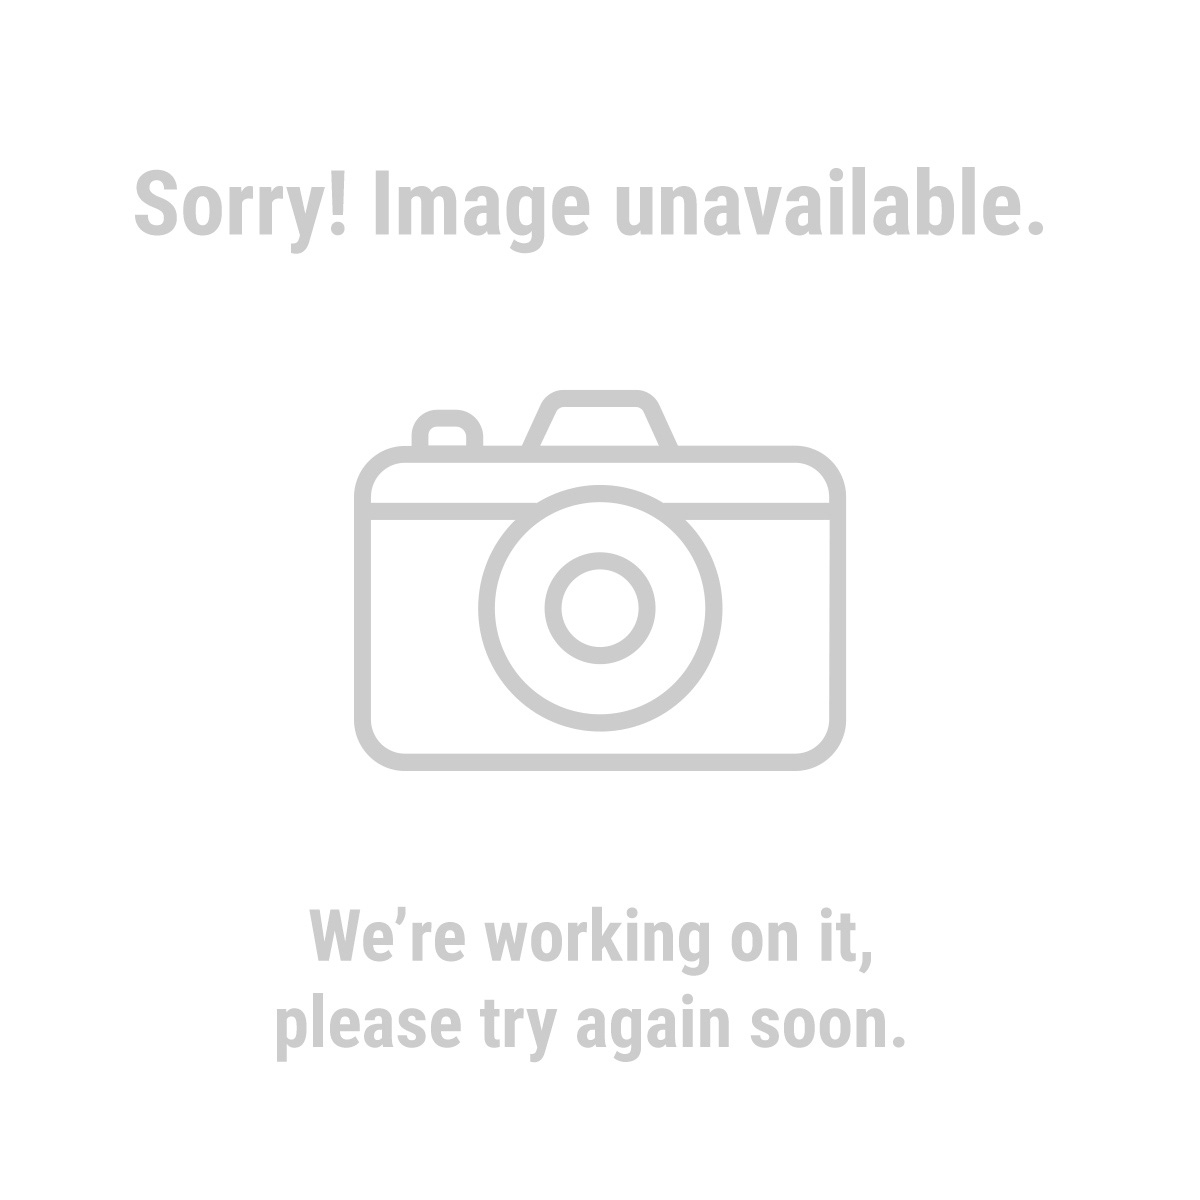 bench grinder with gooseneck lamp